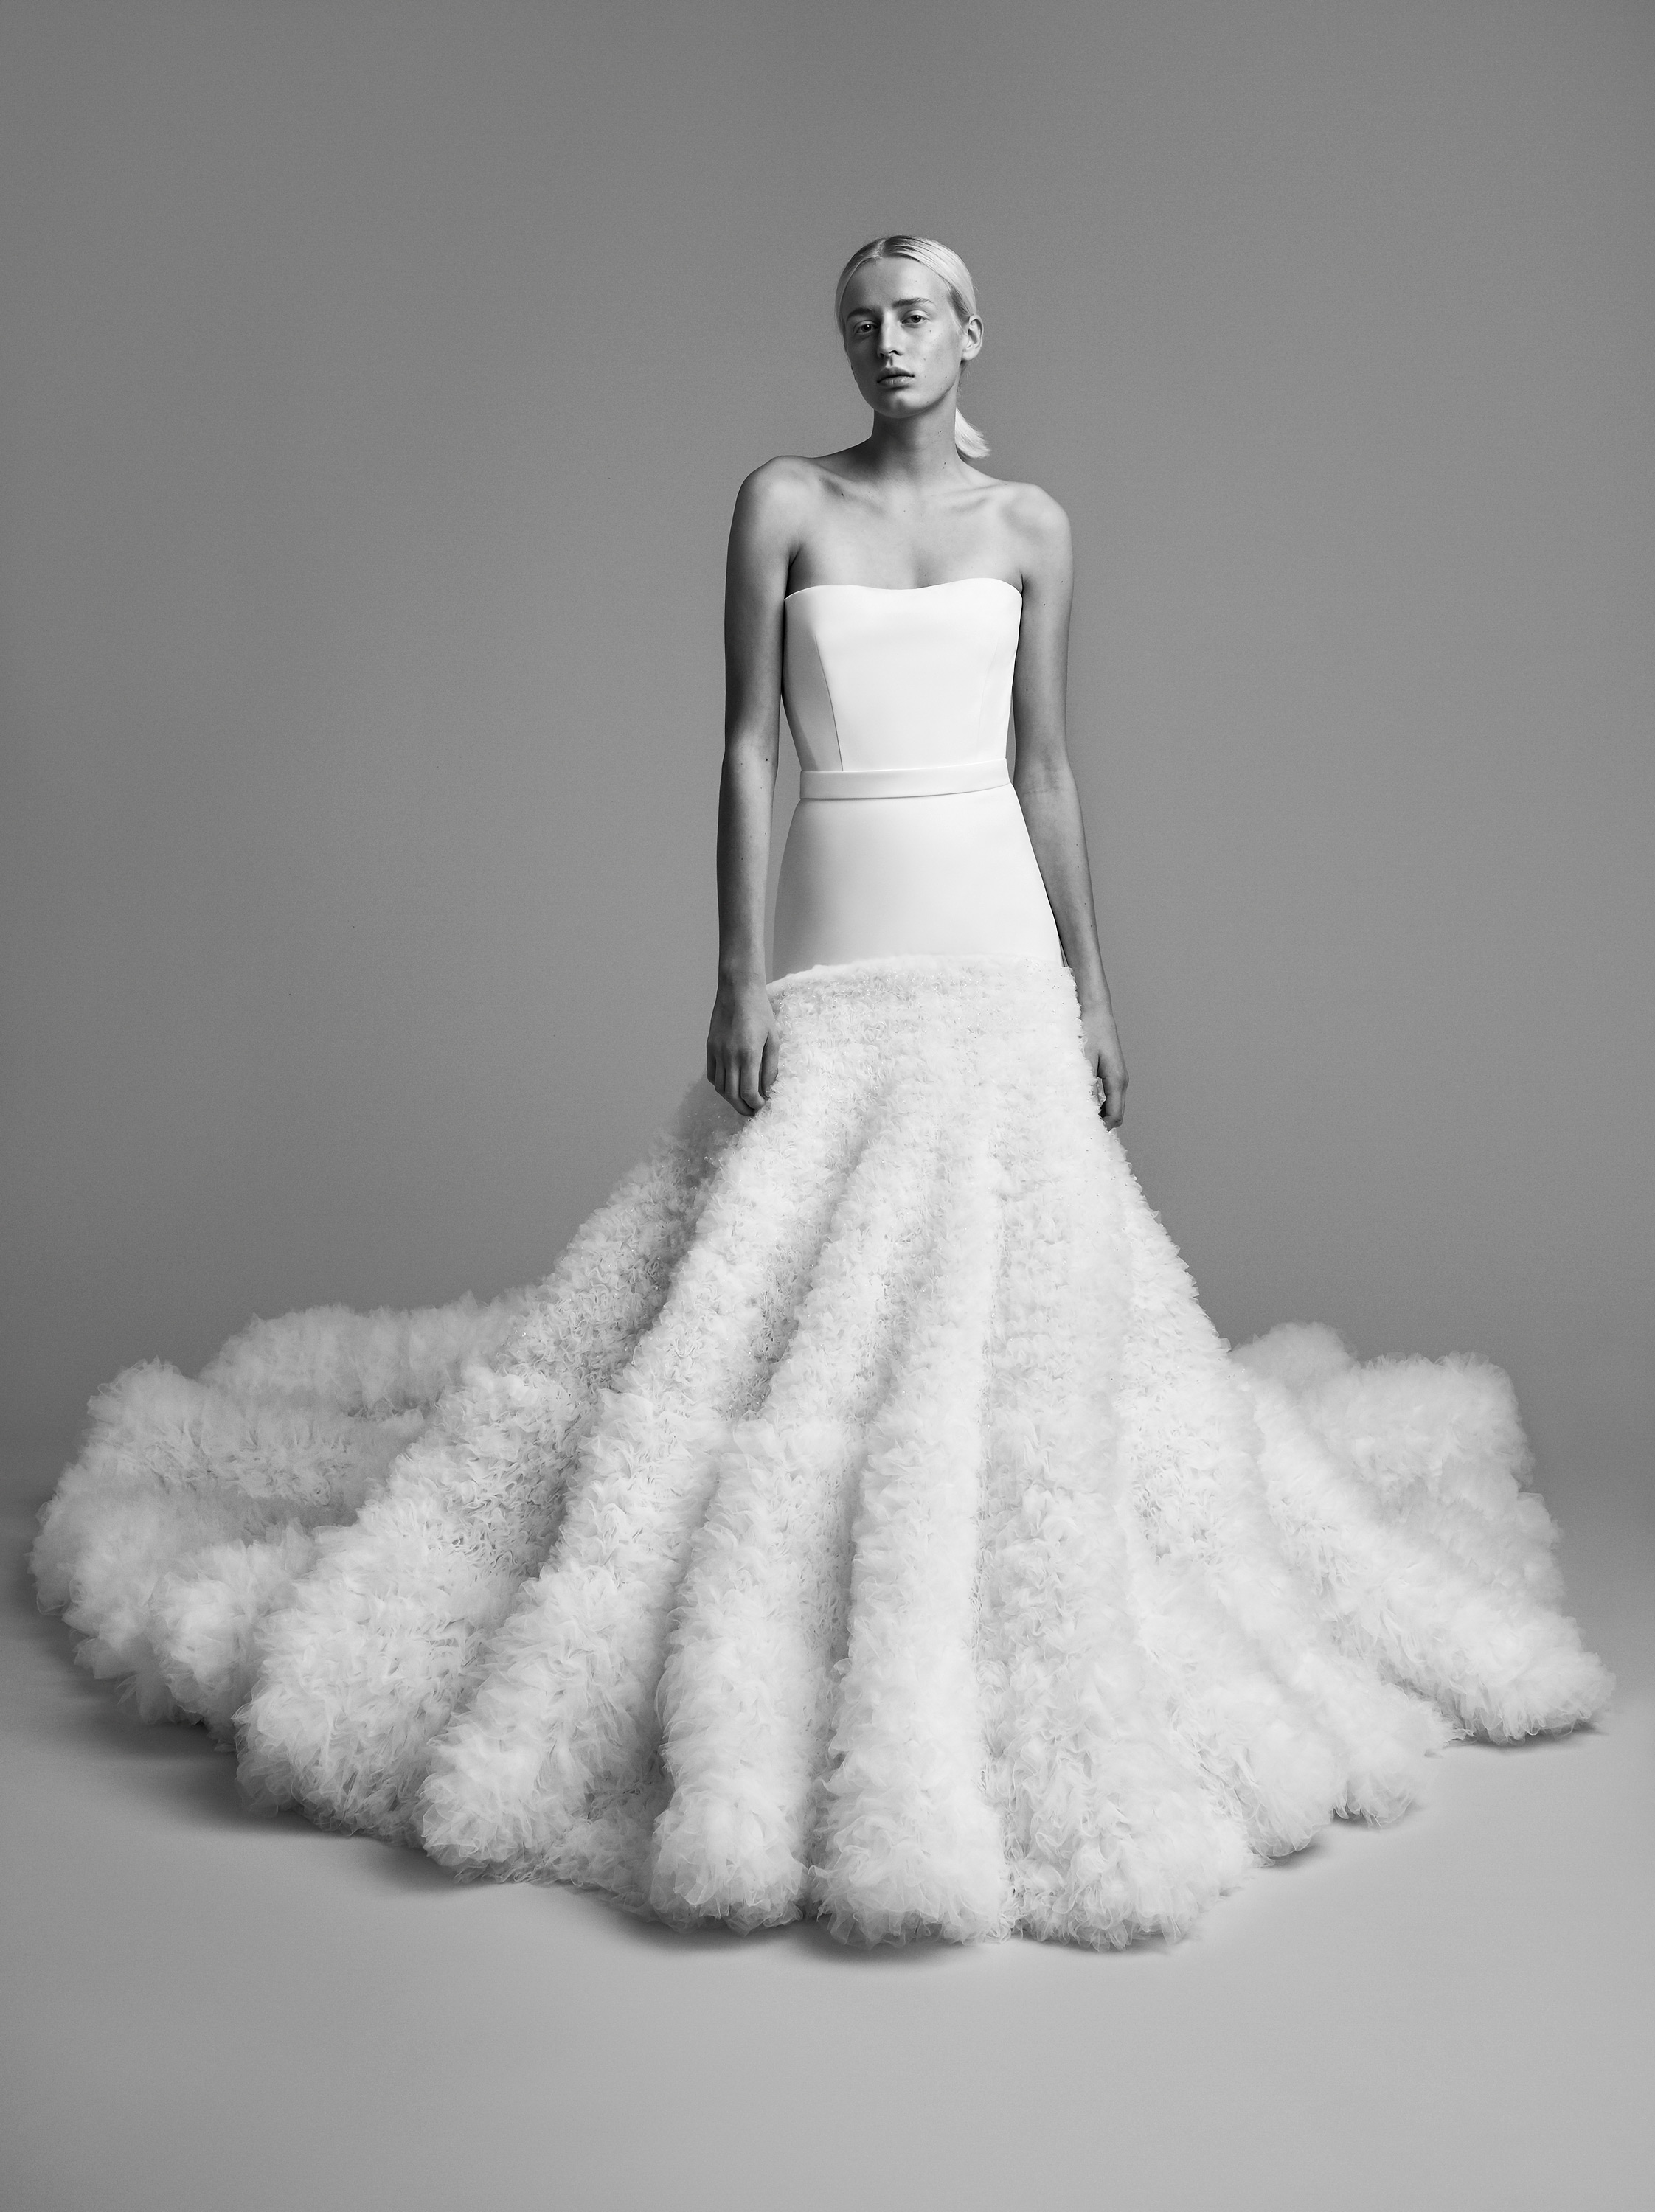 viktor rolf wedding dress fall 2018 crystallized tulle fur gown